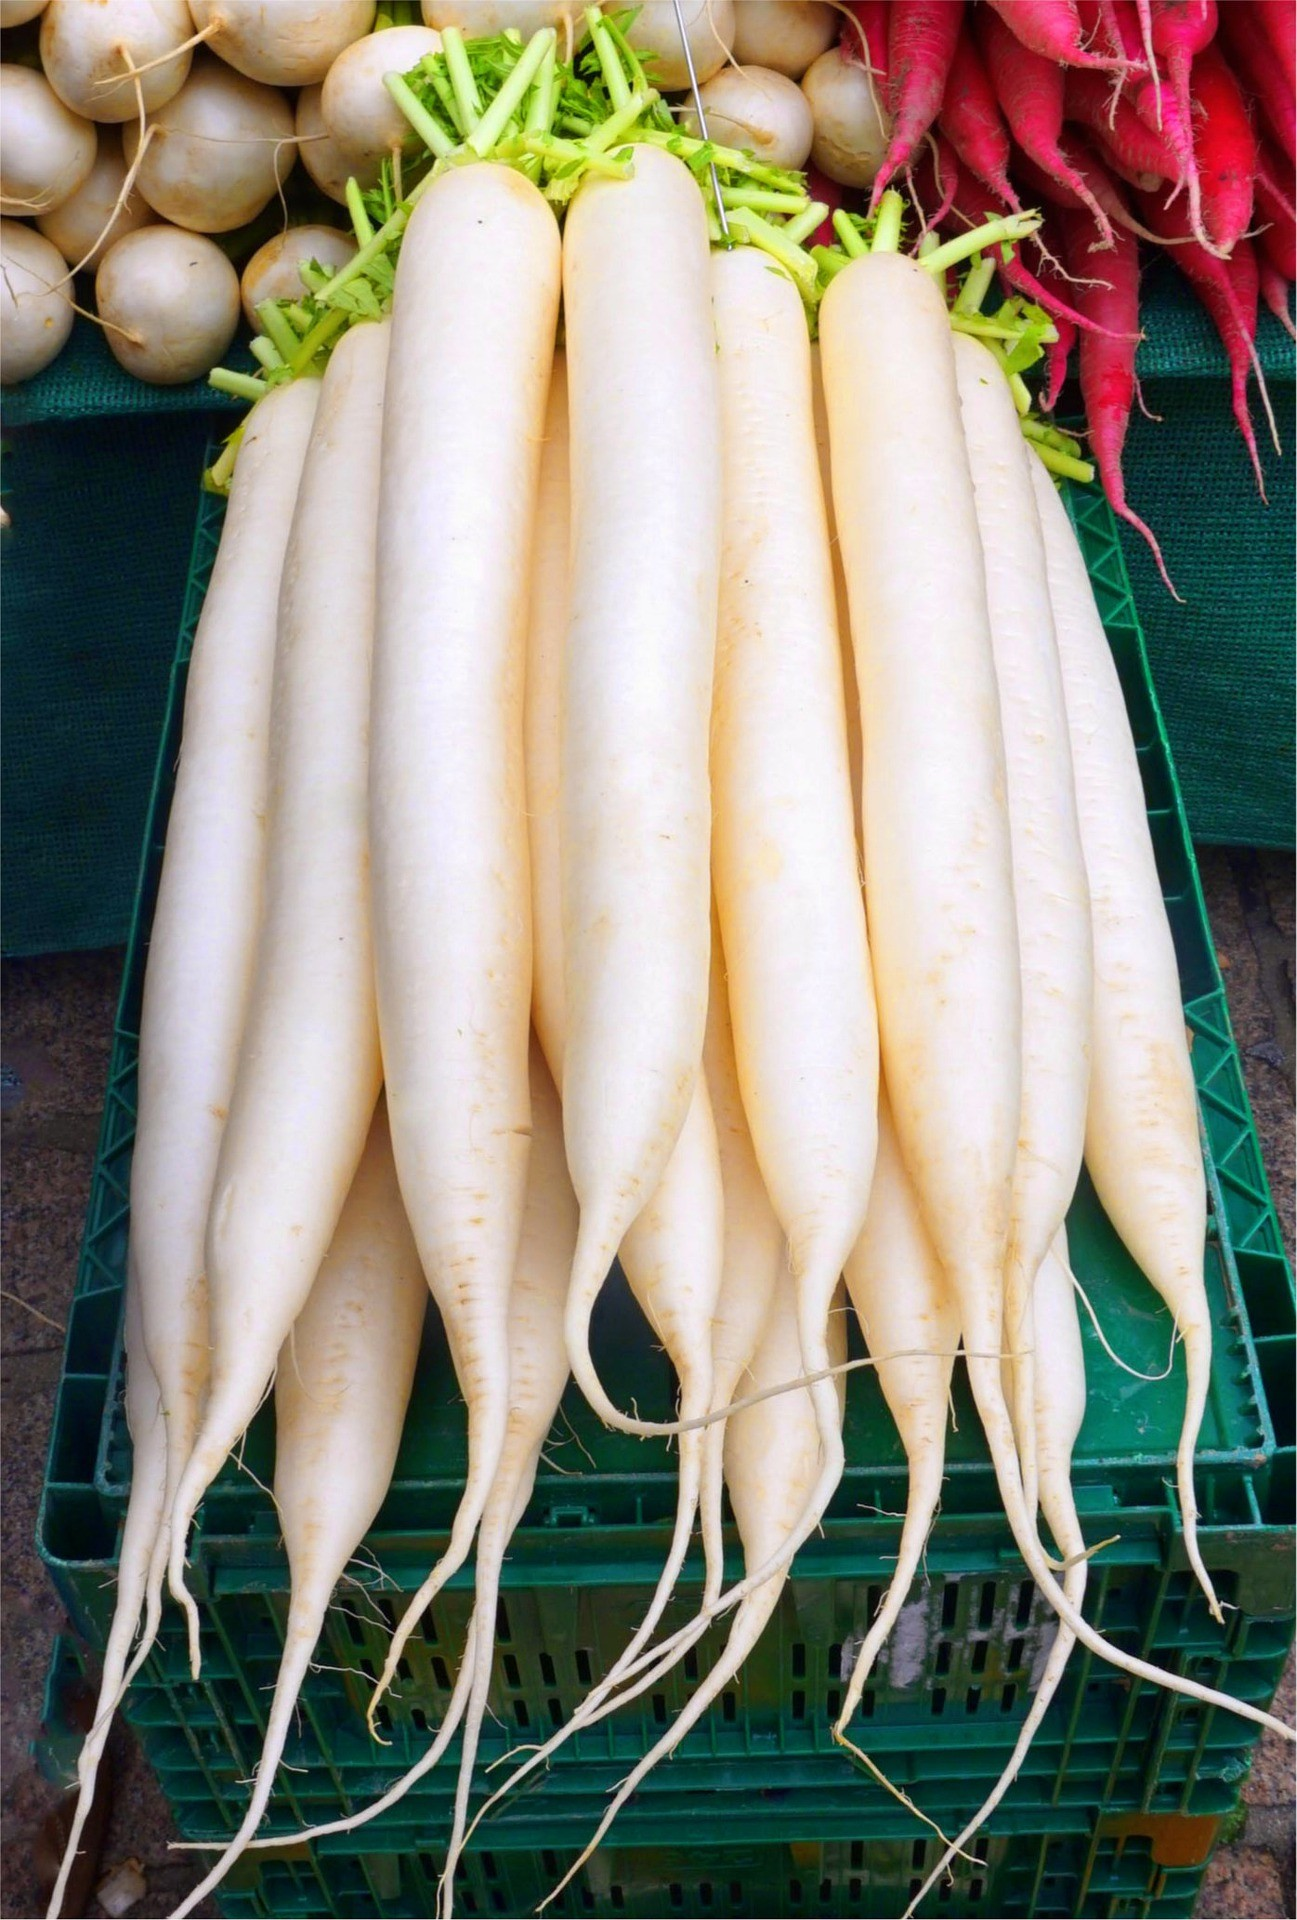 What Is Daikon? TOP 27 Amazing Daikon Health Benefits For (Men & Women)